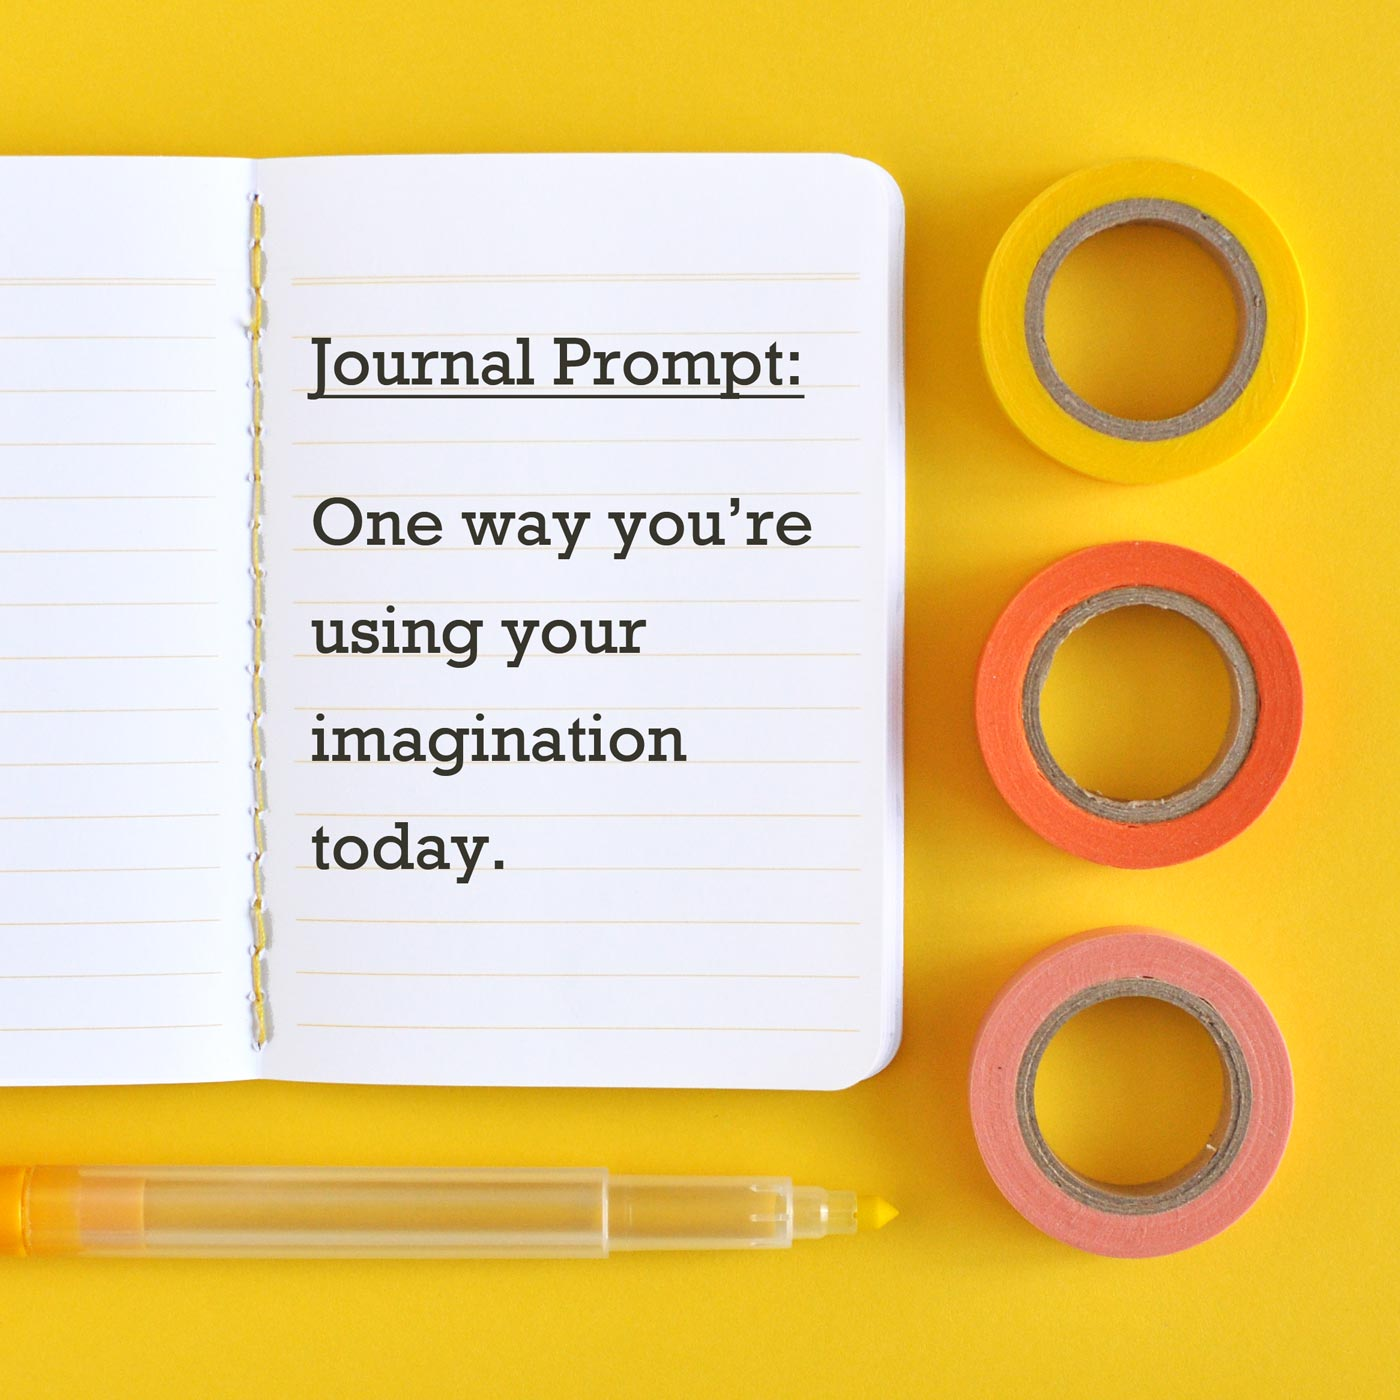 28-02-2018---Journal-prompt-by-Christie-Zimmer.jpg